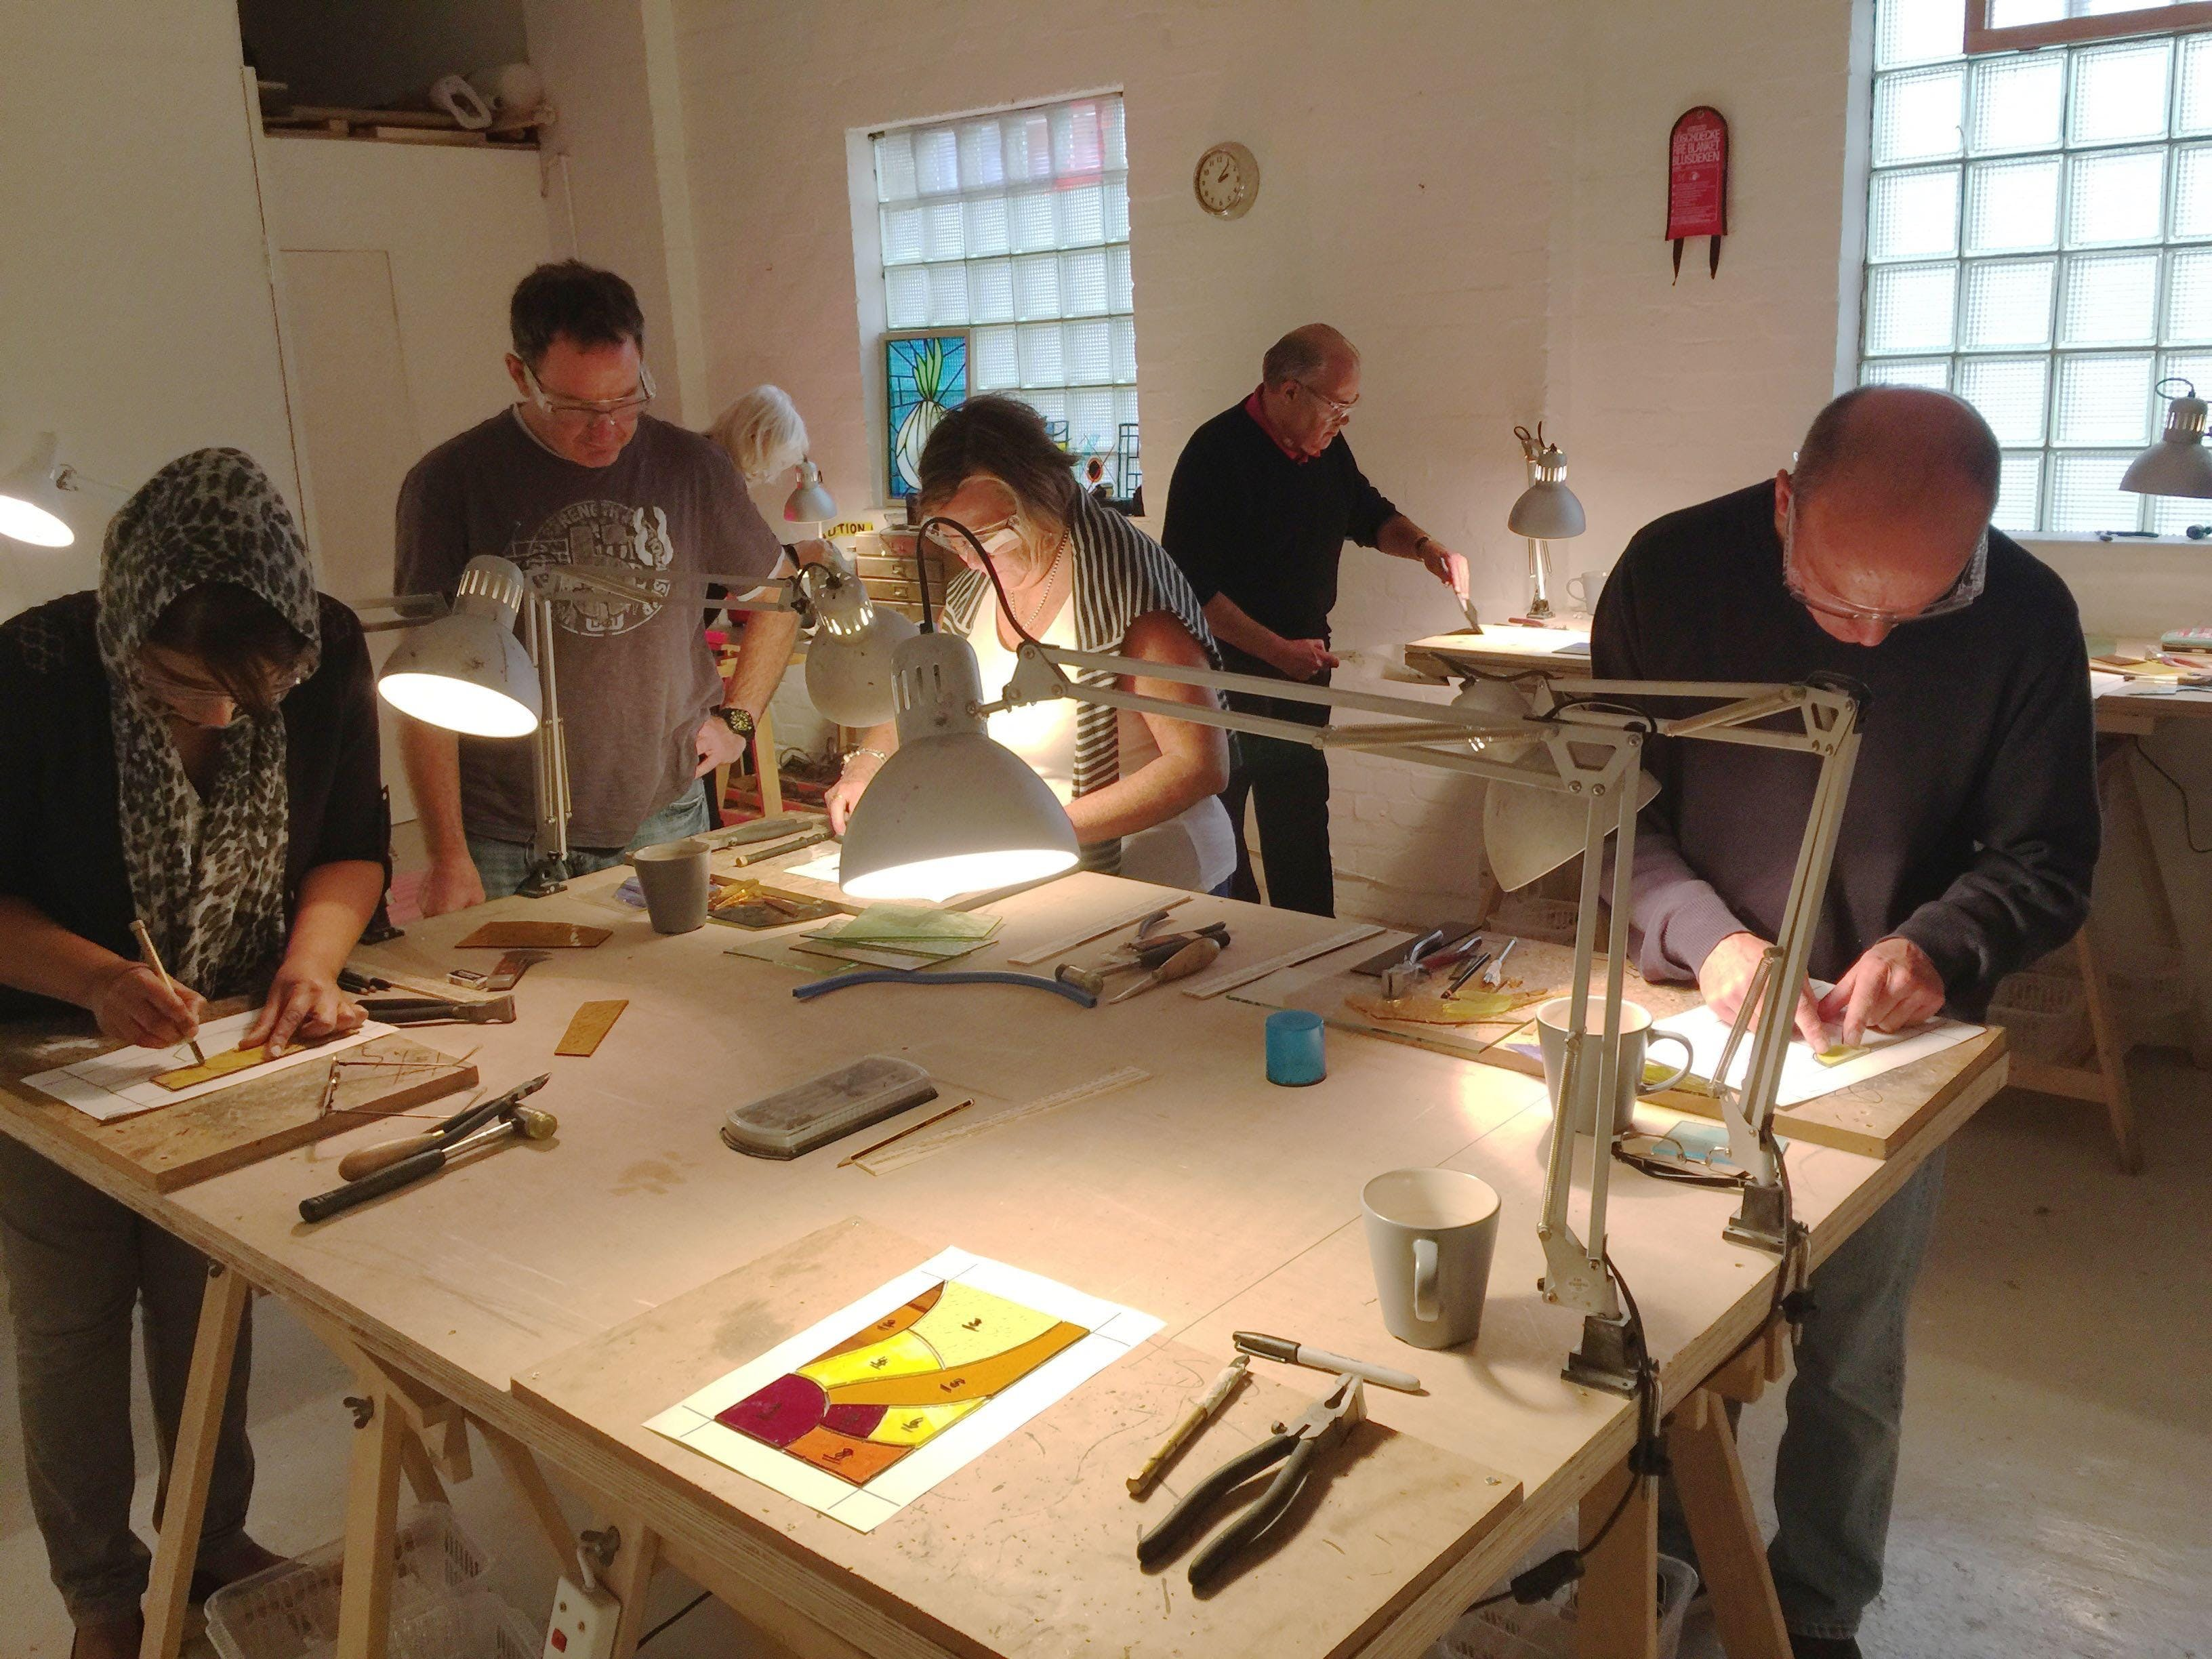 Voucher for One Day Stained Glass Workshop for Beginners